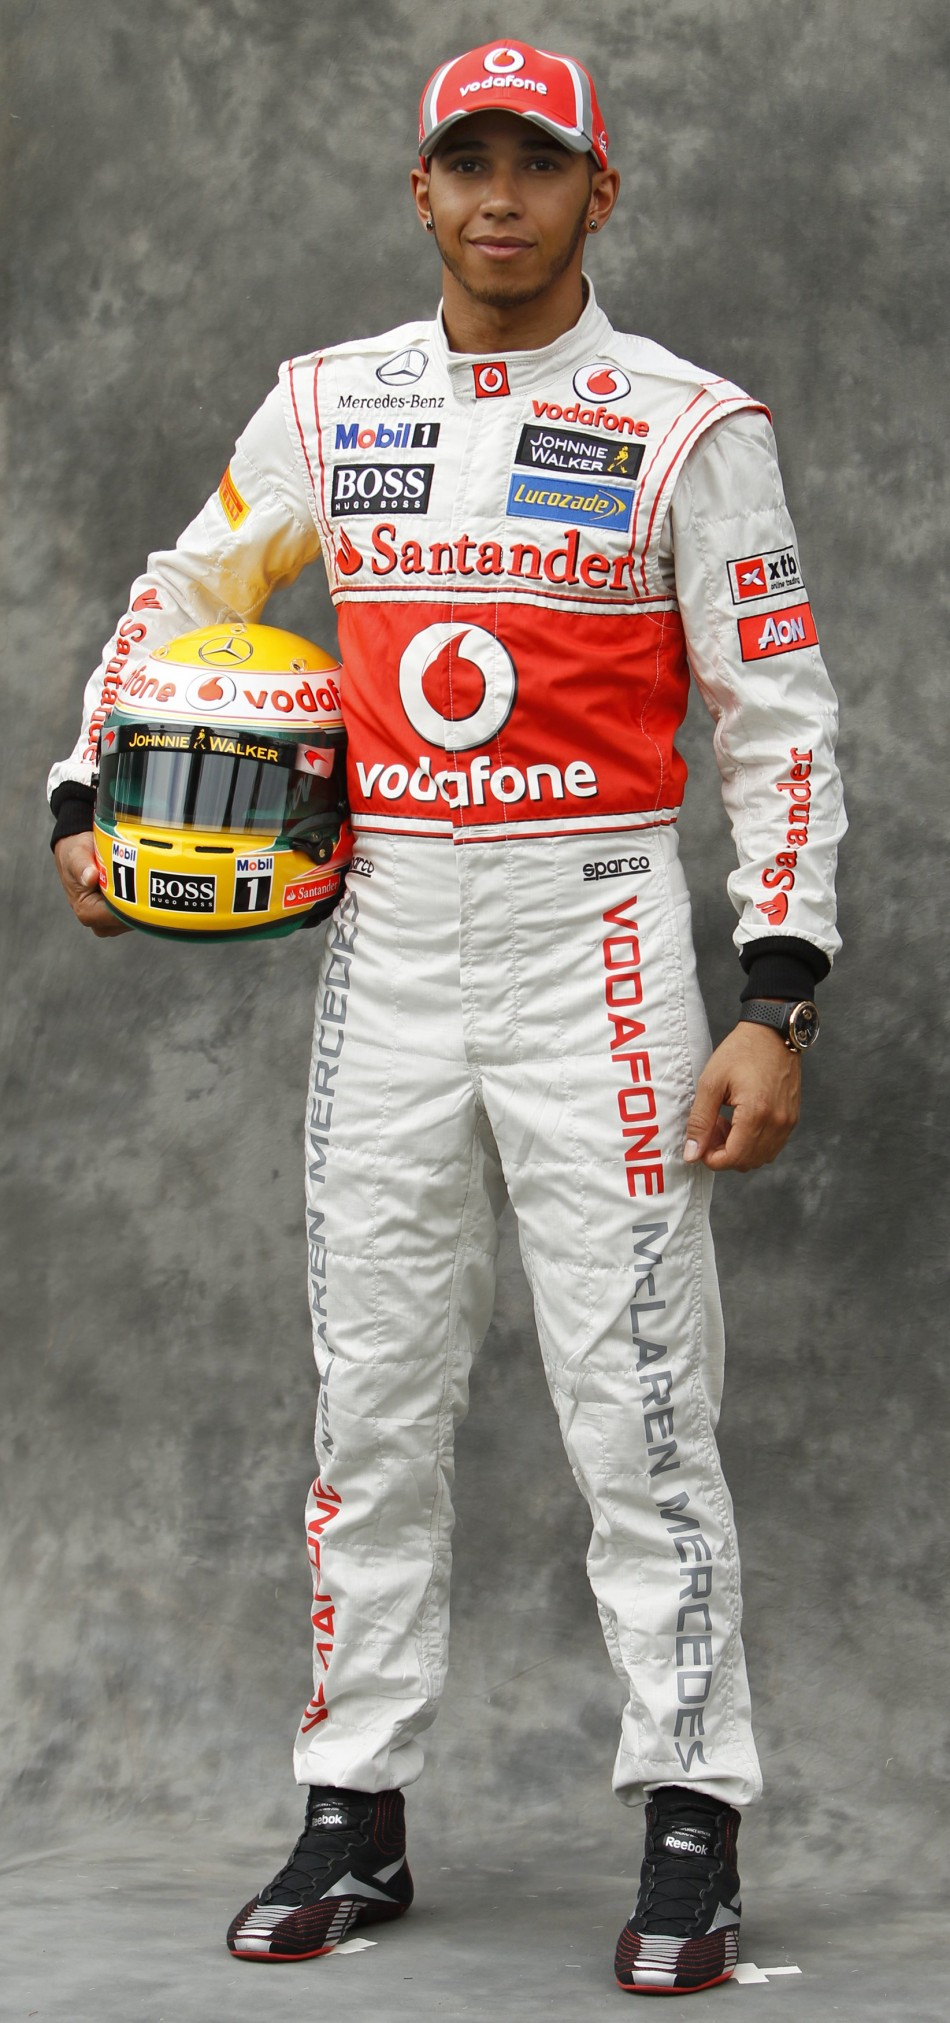 McLaren Formula One driver Hamilton poses prior to the Australian F1 Grand Prix at the Albert Park circuit in Melbourne